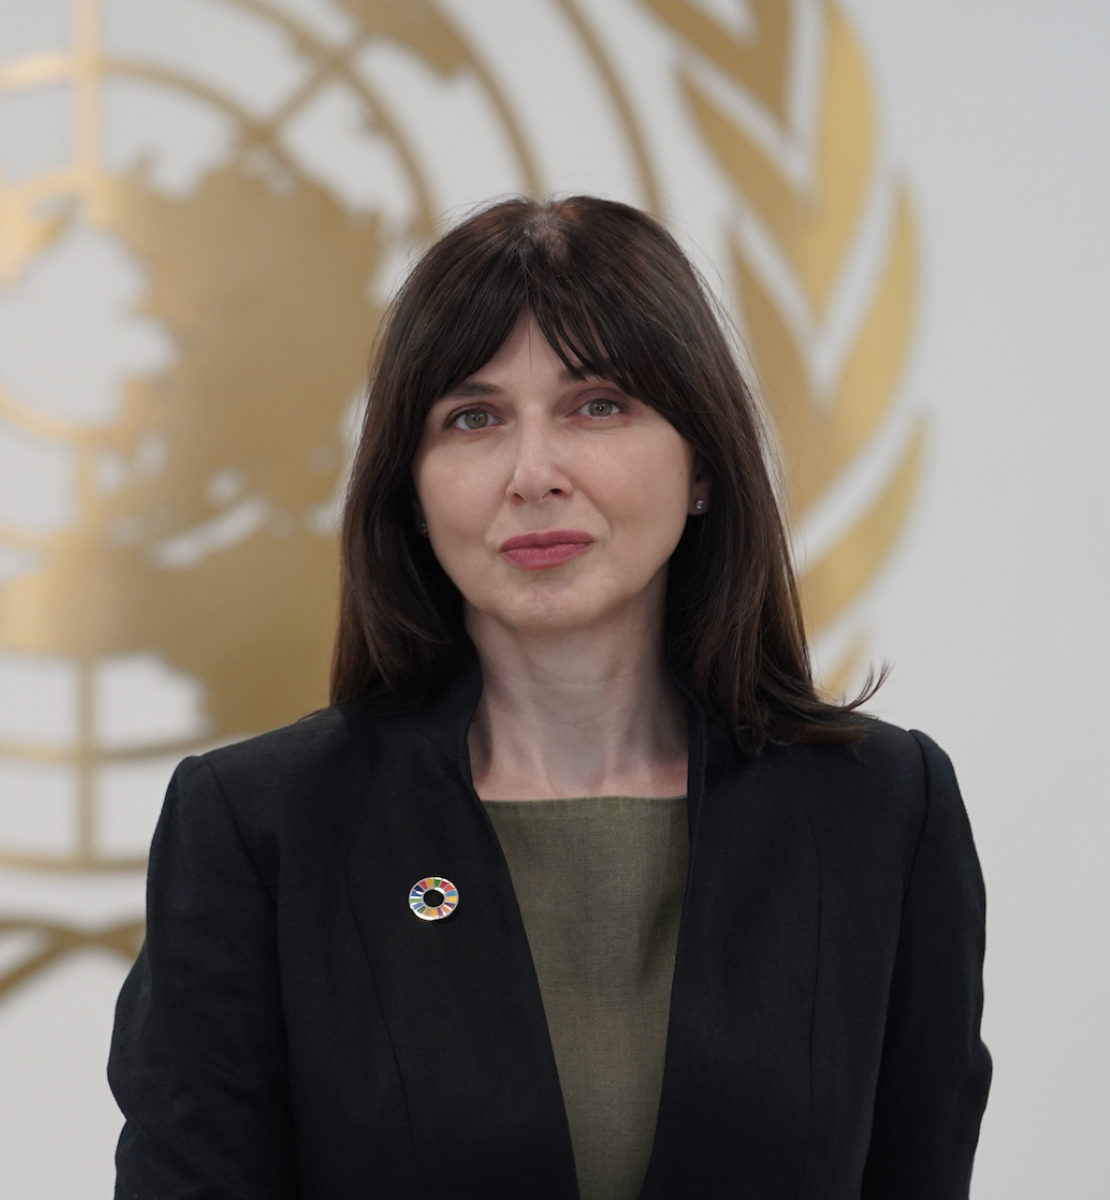 A woman, standing in front of the United Nations symbol, wearing a black jacket and green shirt looks directly at the camera.